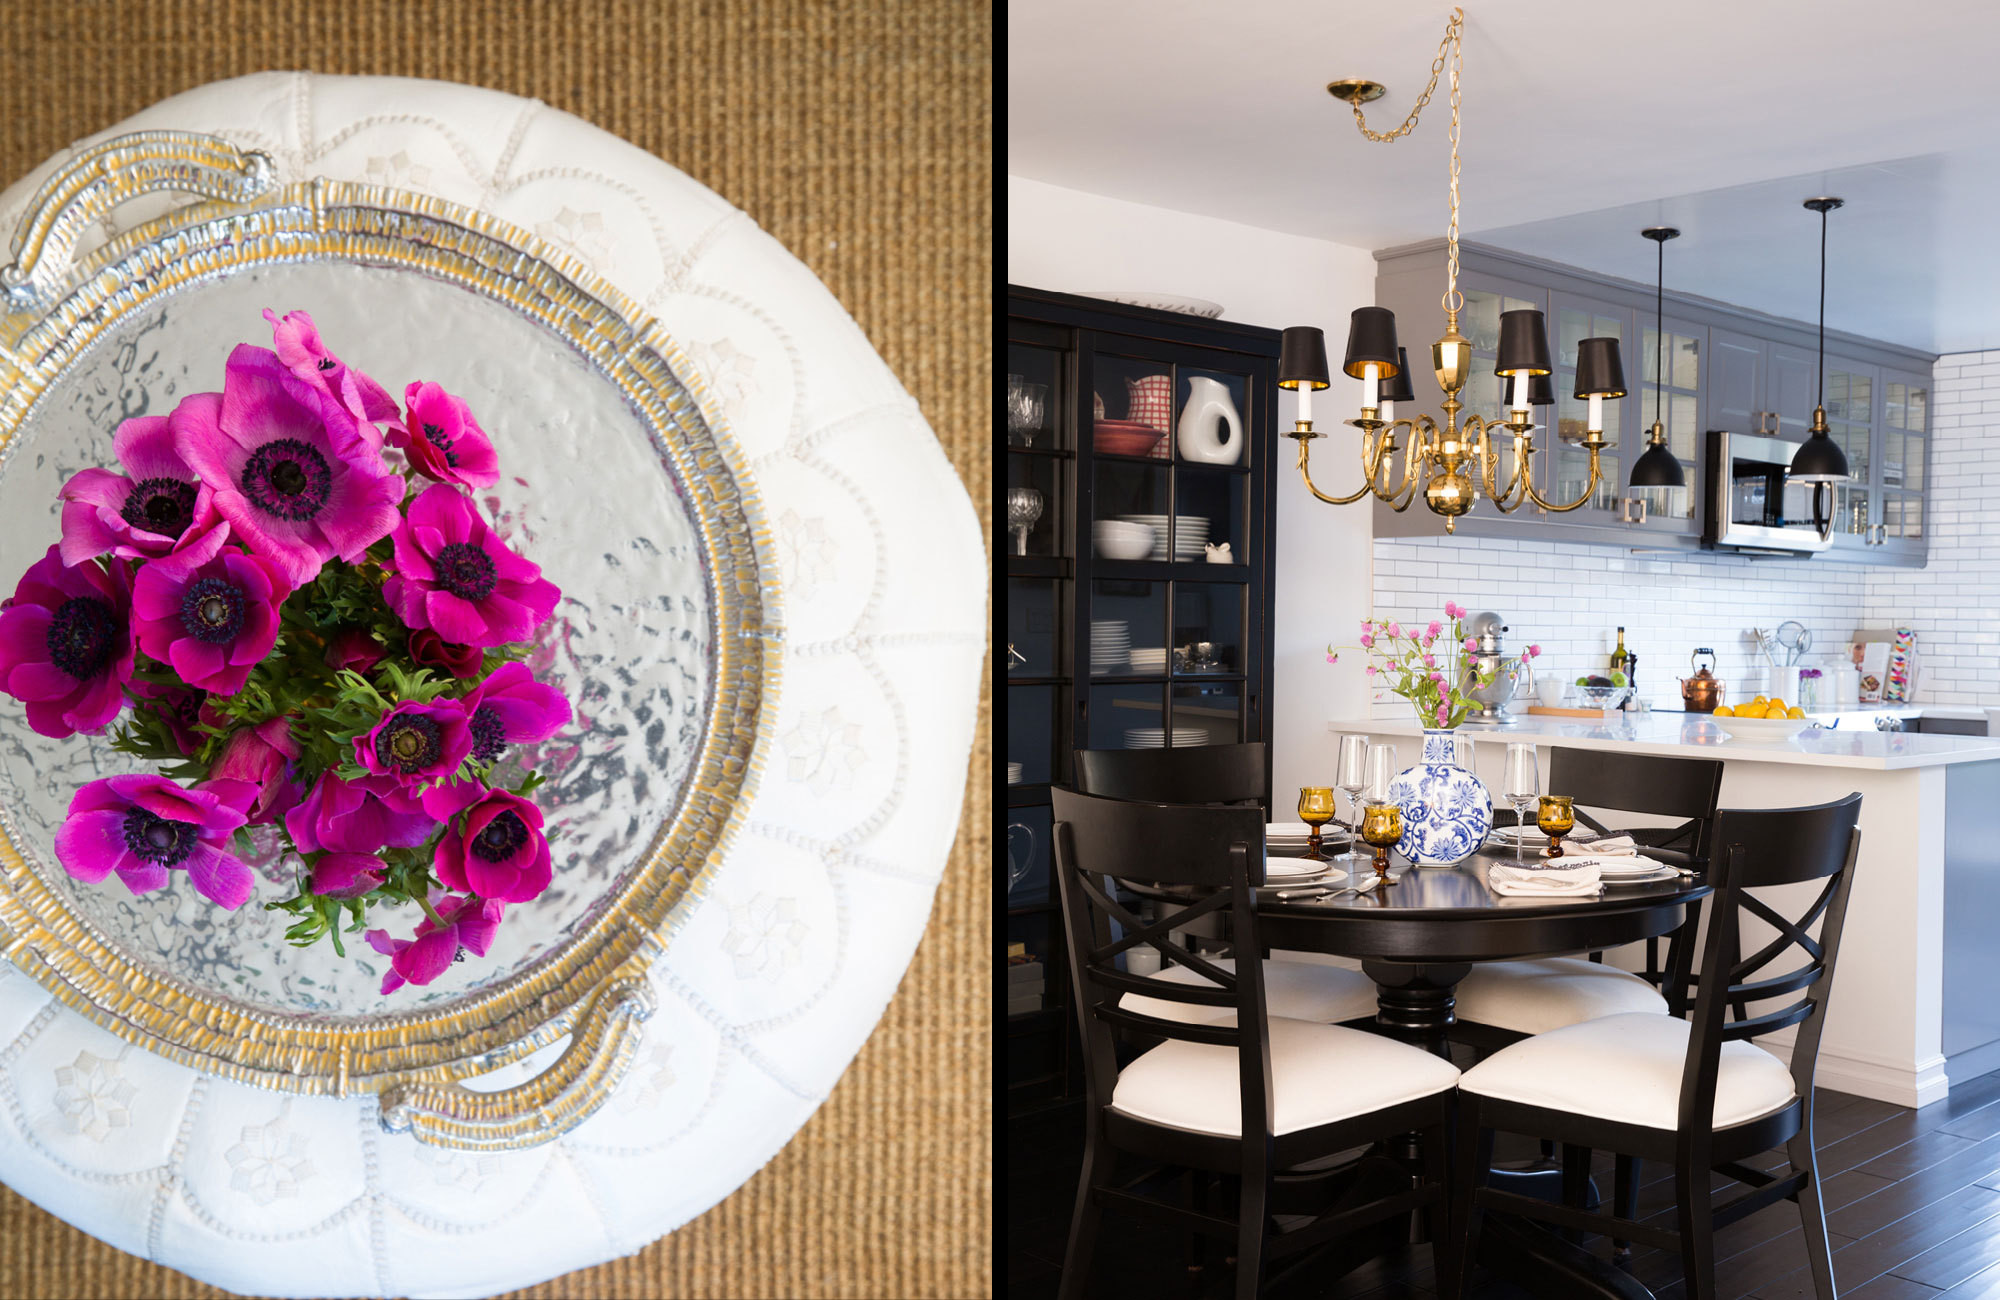 House tour - estilo clasico chic 15